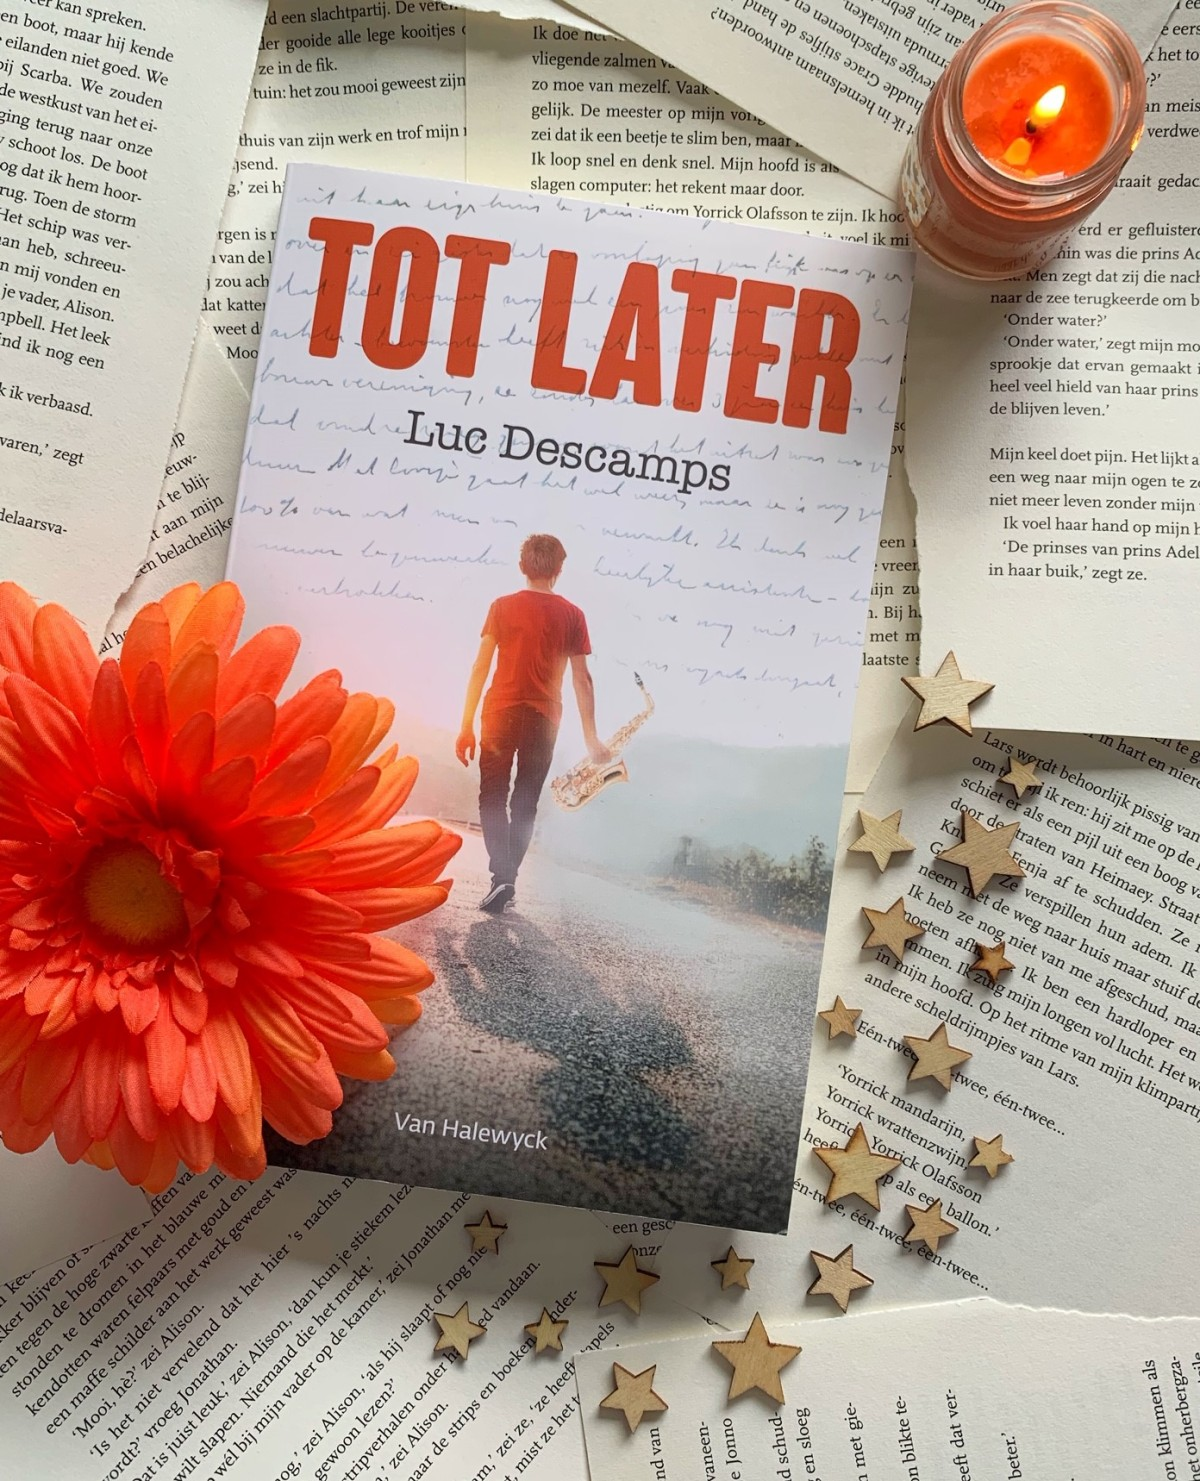 Tot later – Luc Descamps